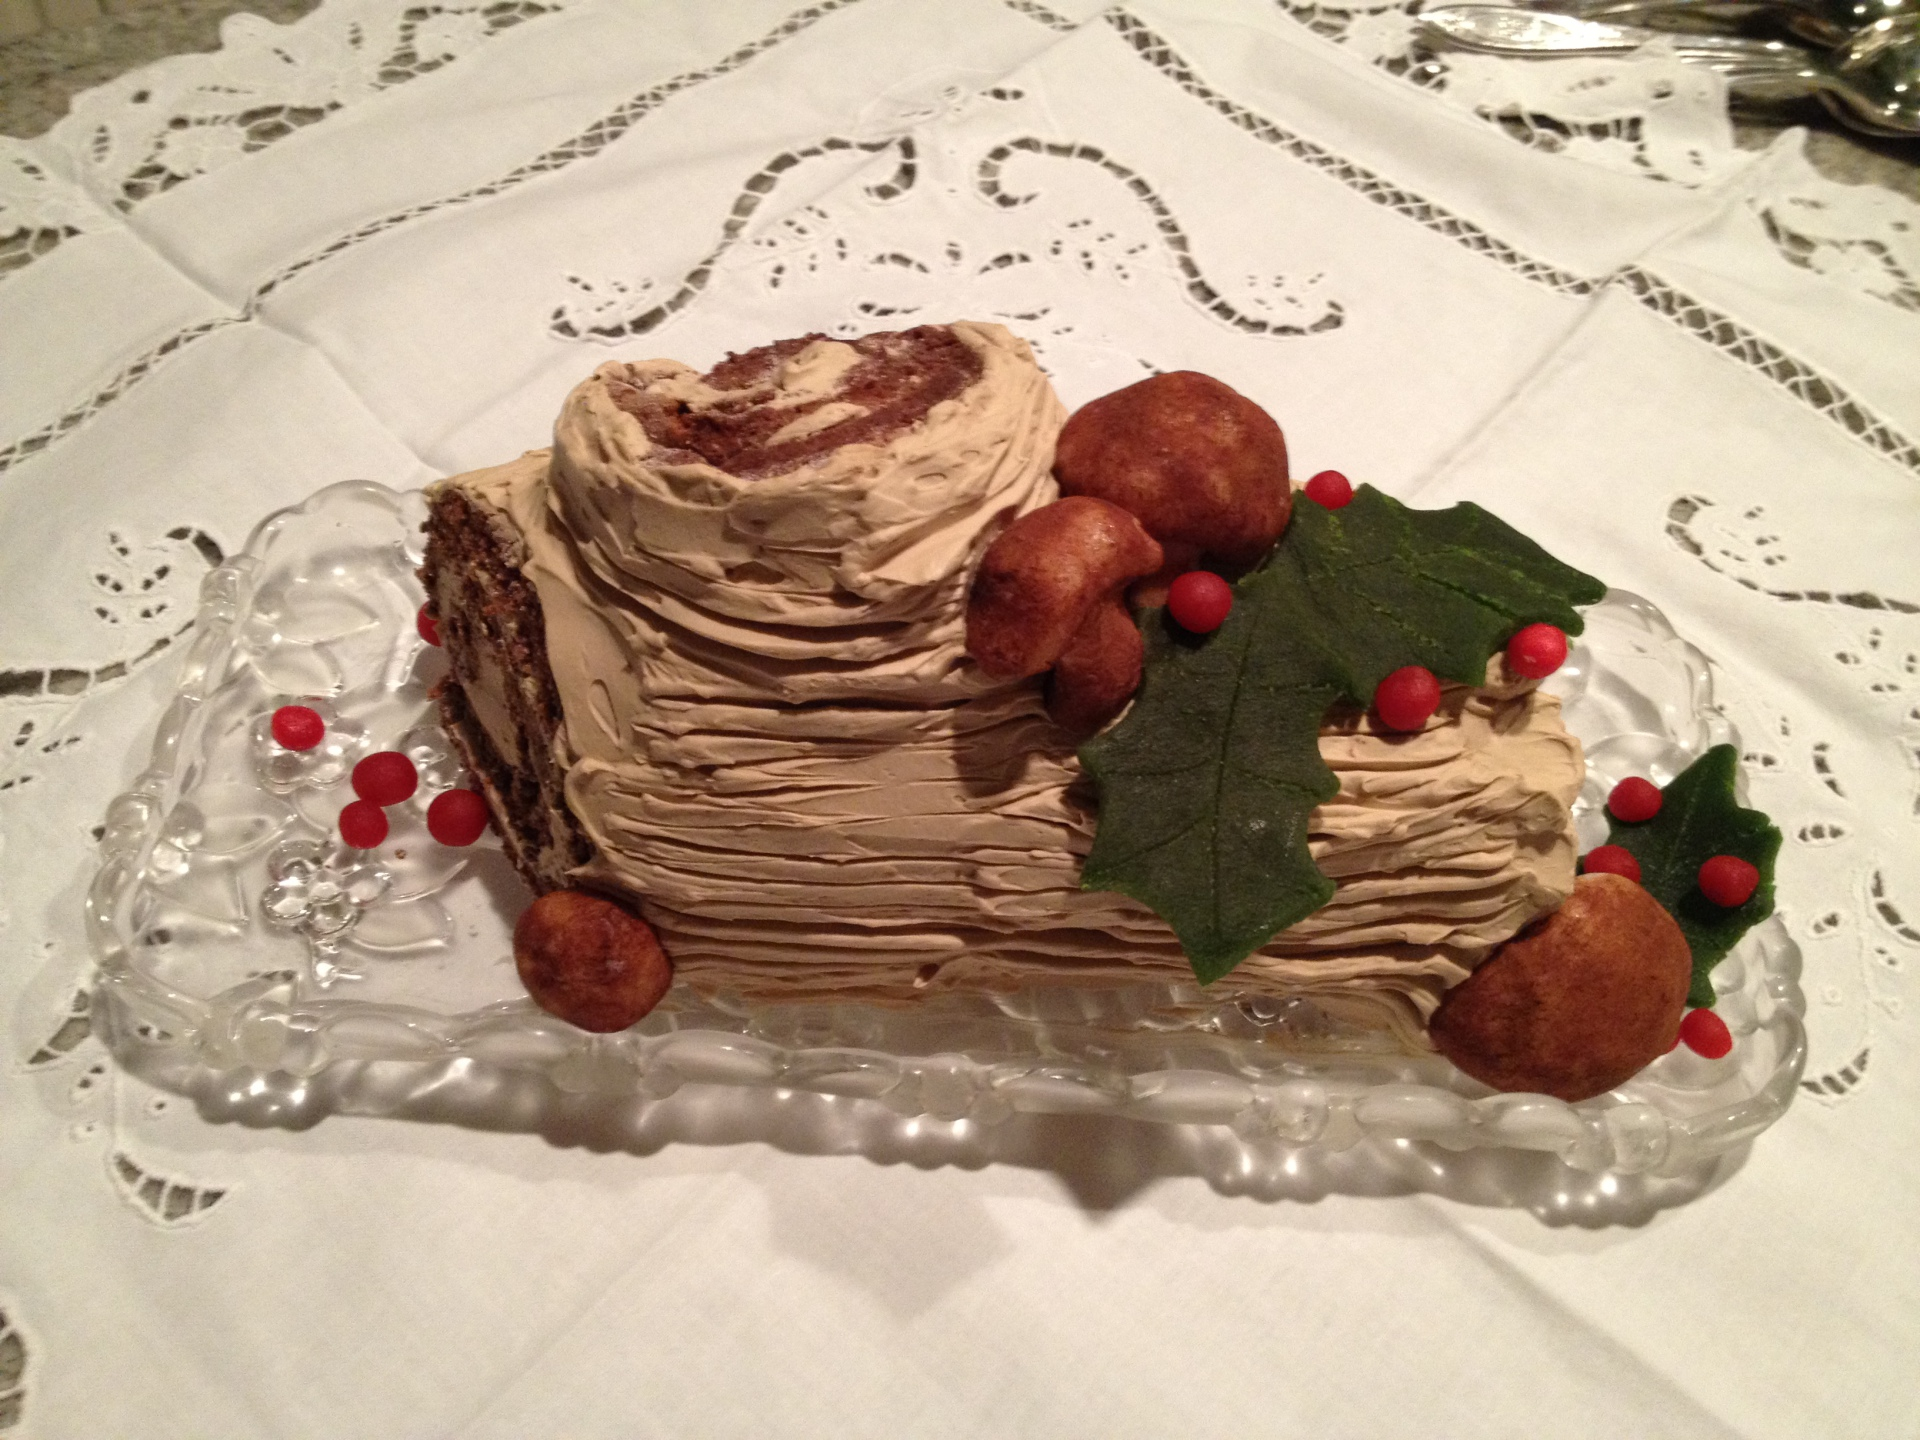 Buche de Noel w/ hand made mushrooms, holly and berries.